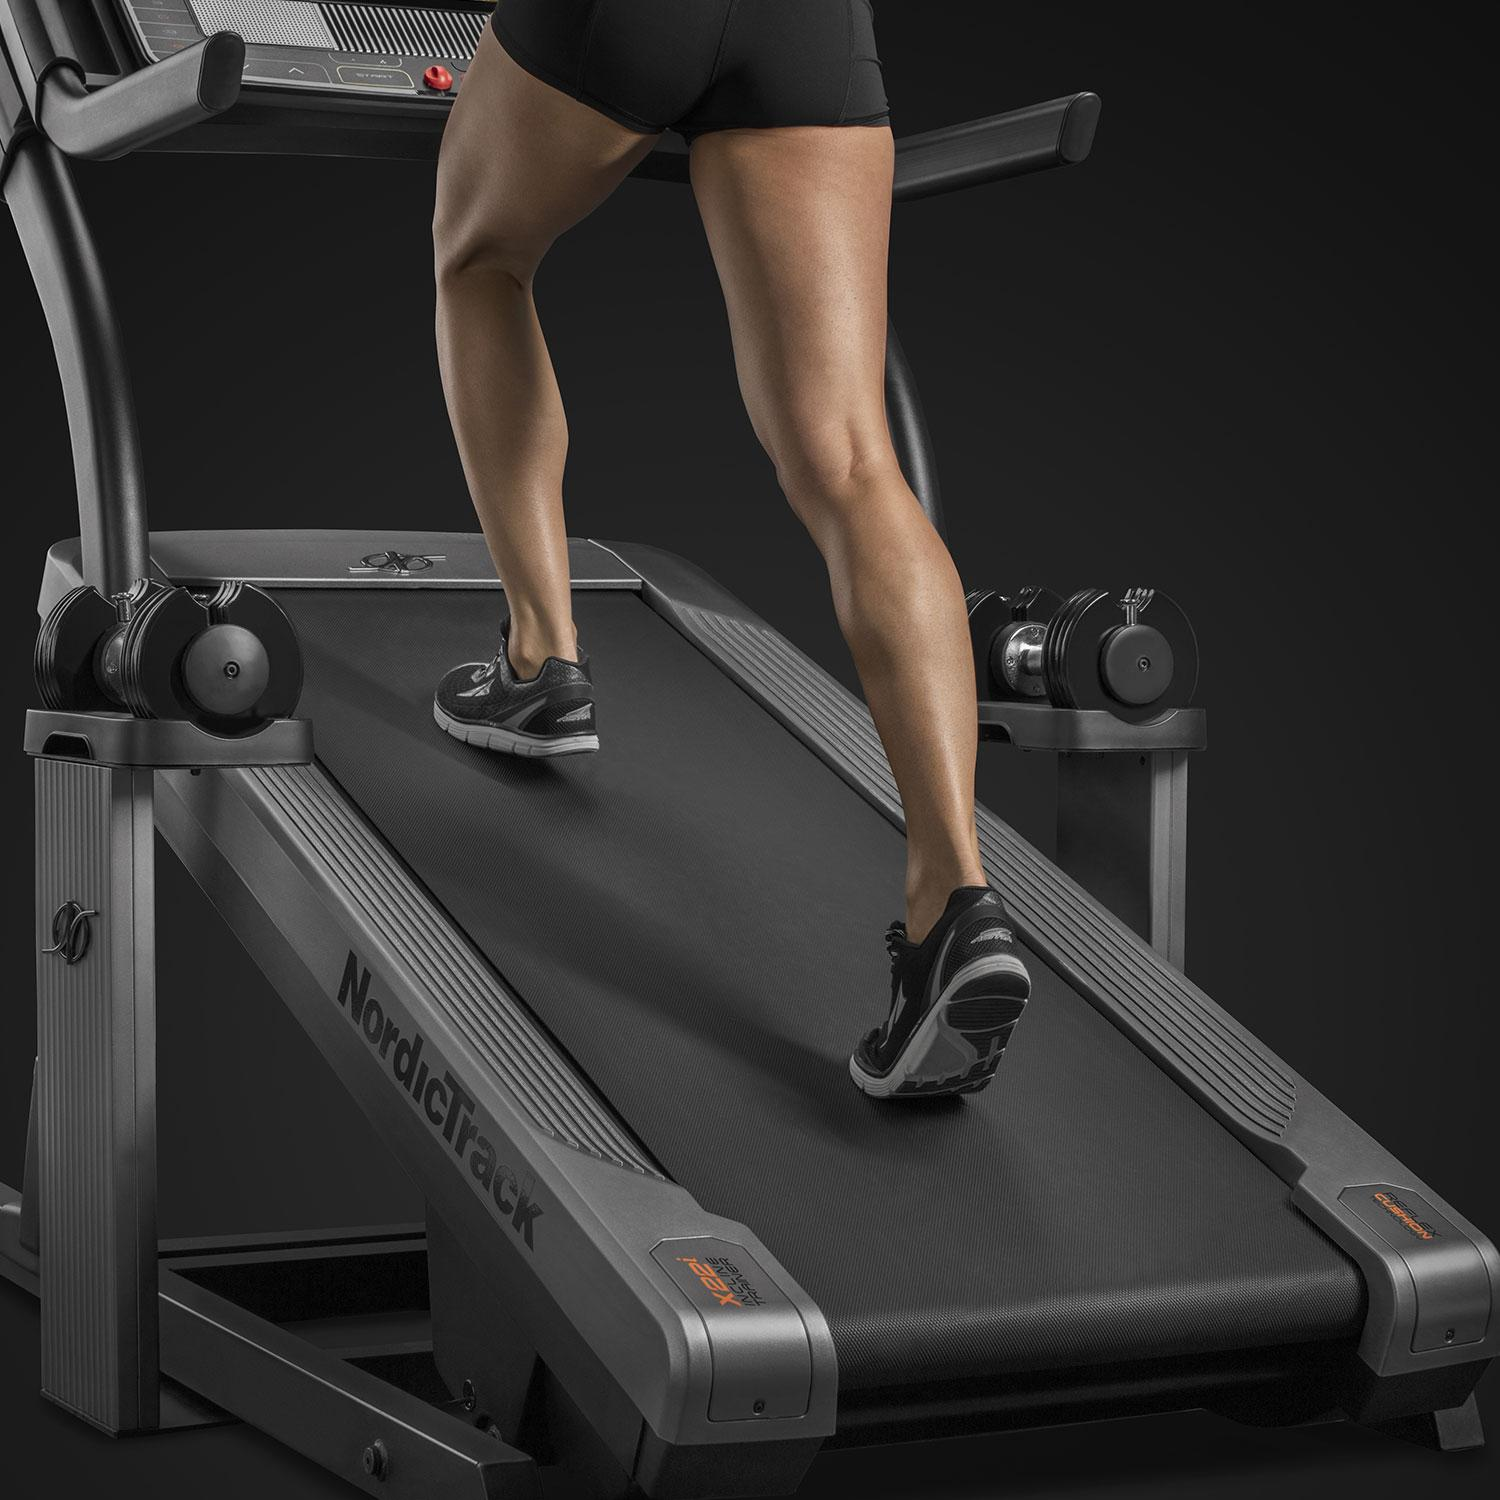 Беговая дорожка NordicTrack Incline Trainer X22i, фото №9